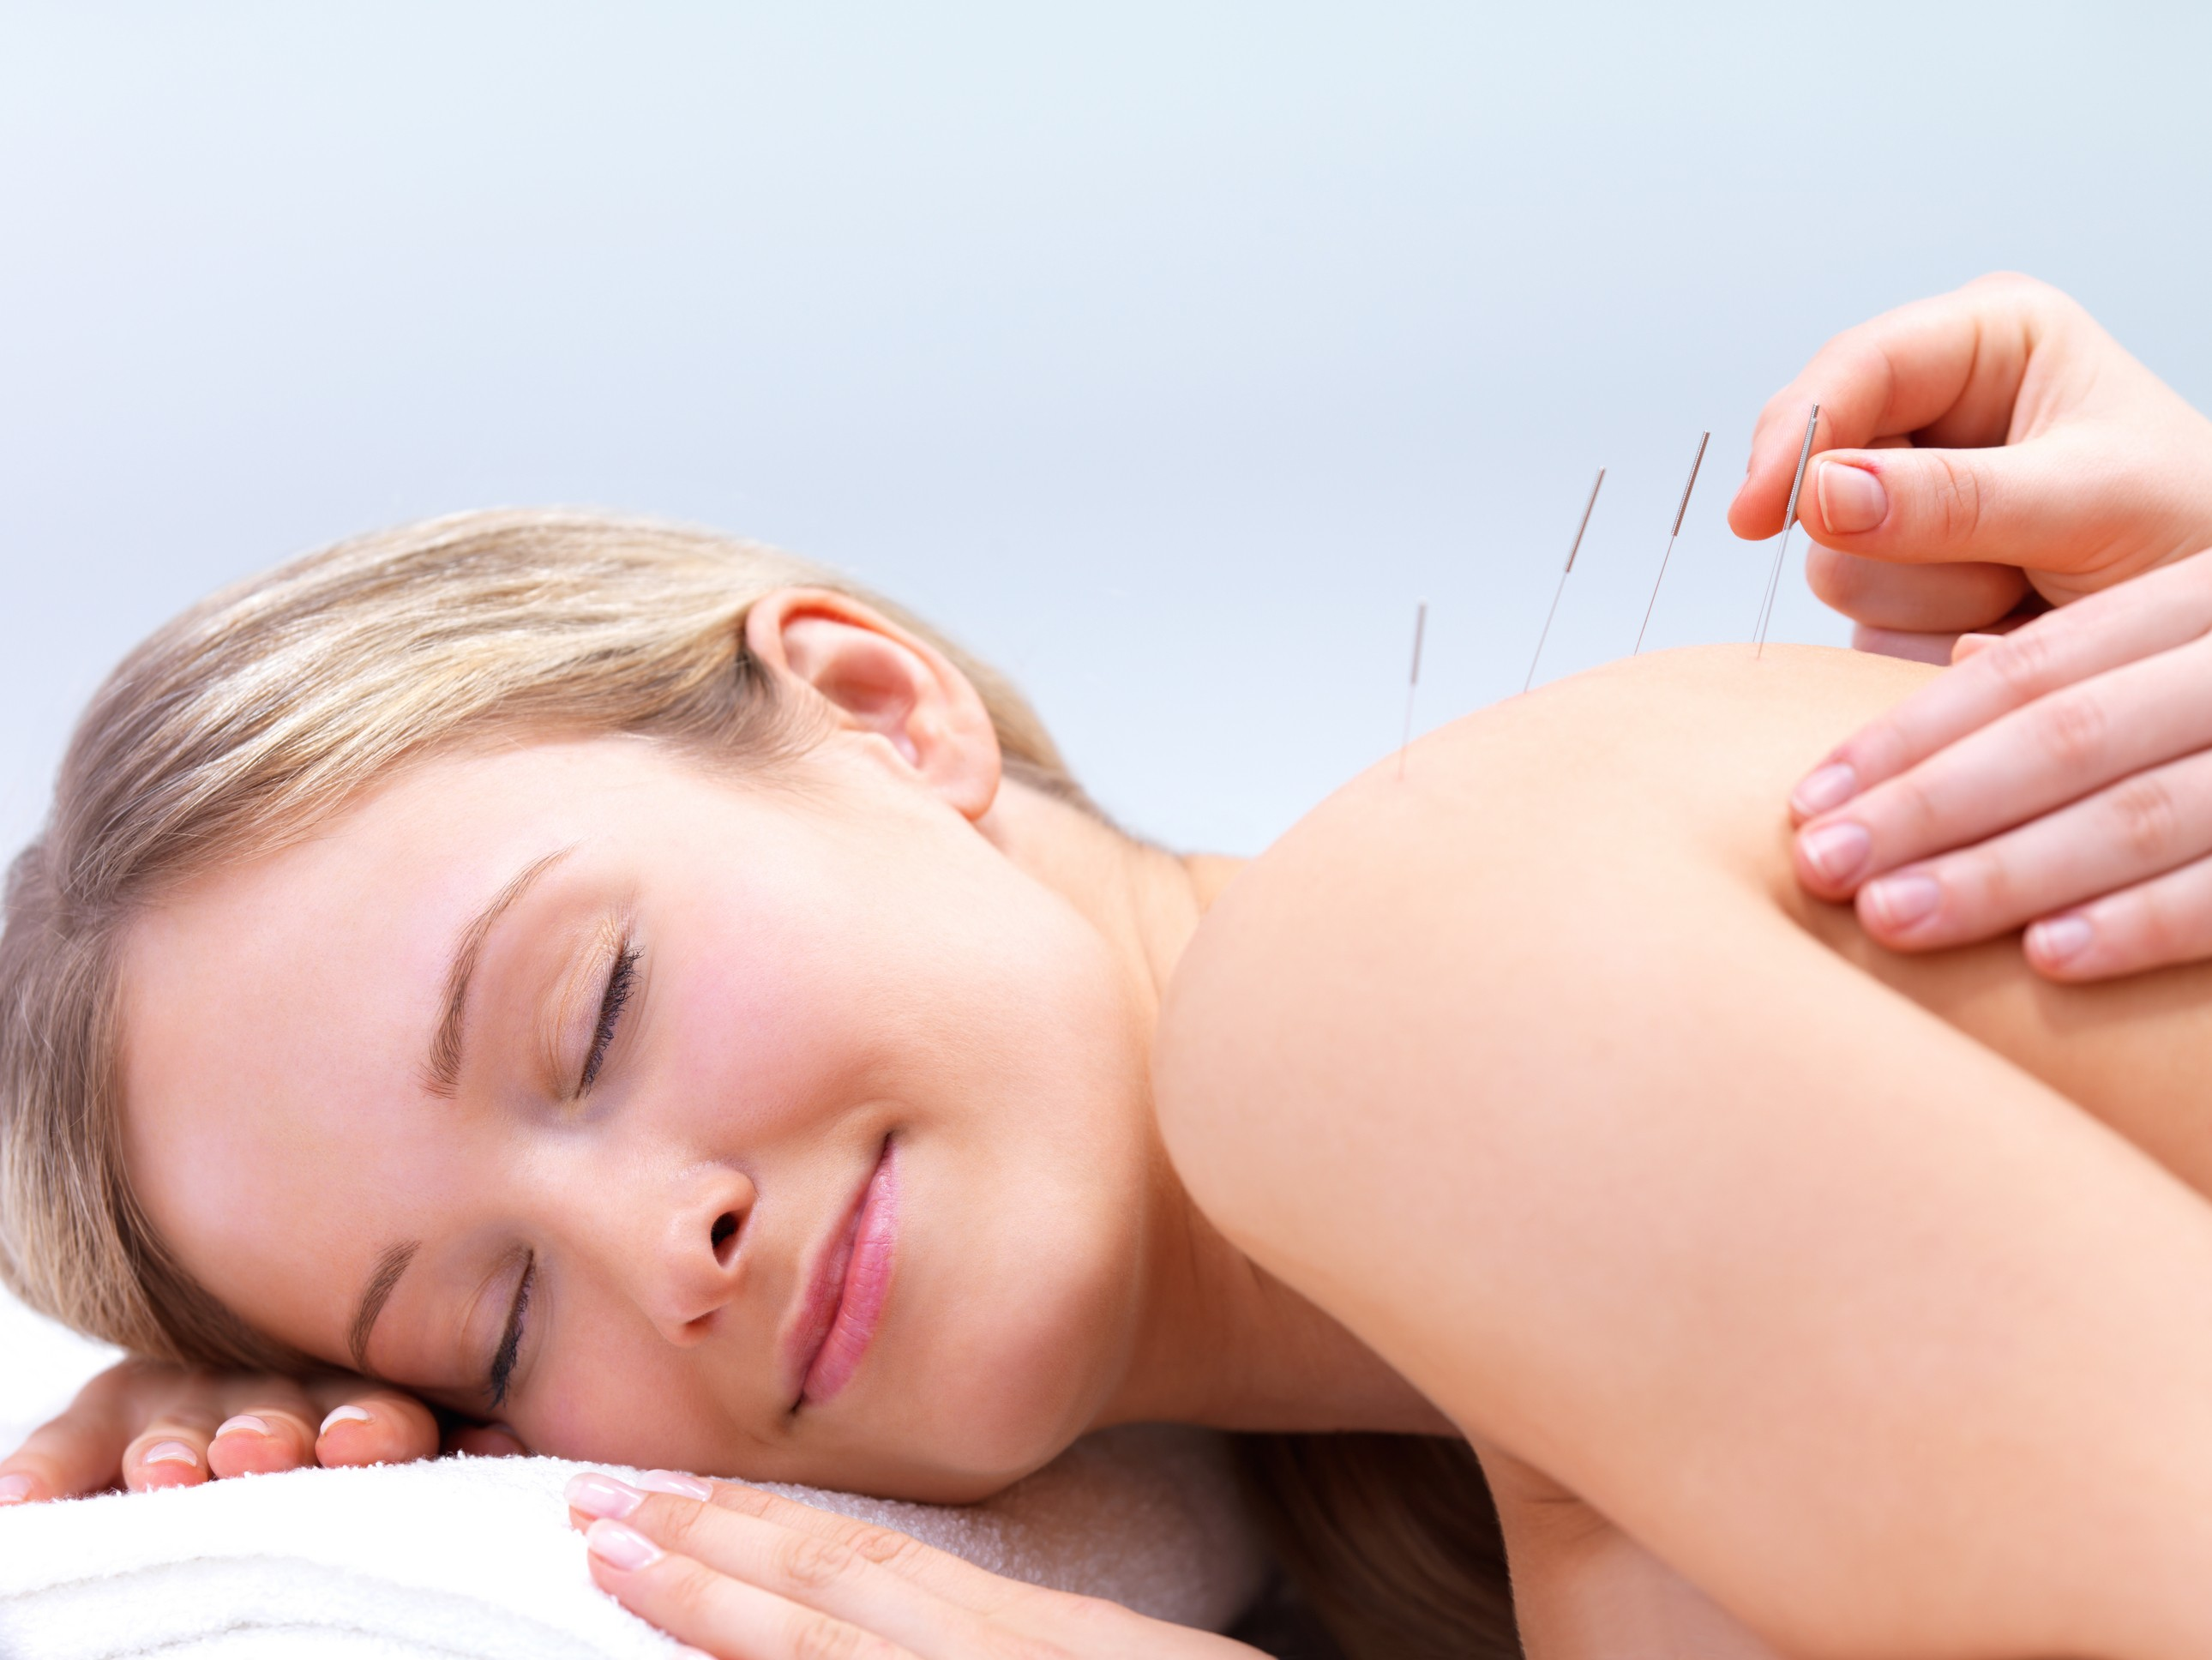 Meridian Acupuncture & Wellness acupuncture services in Portland, Oregon.